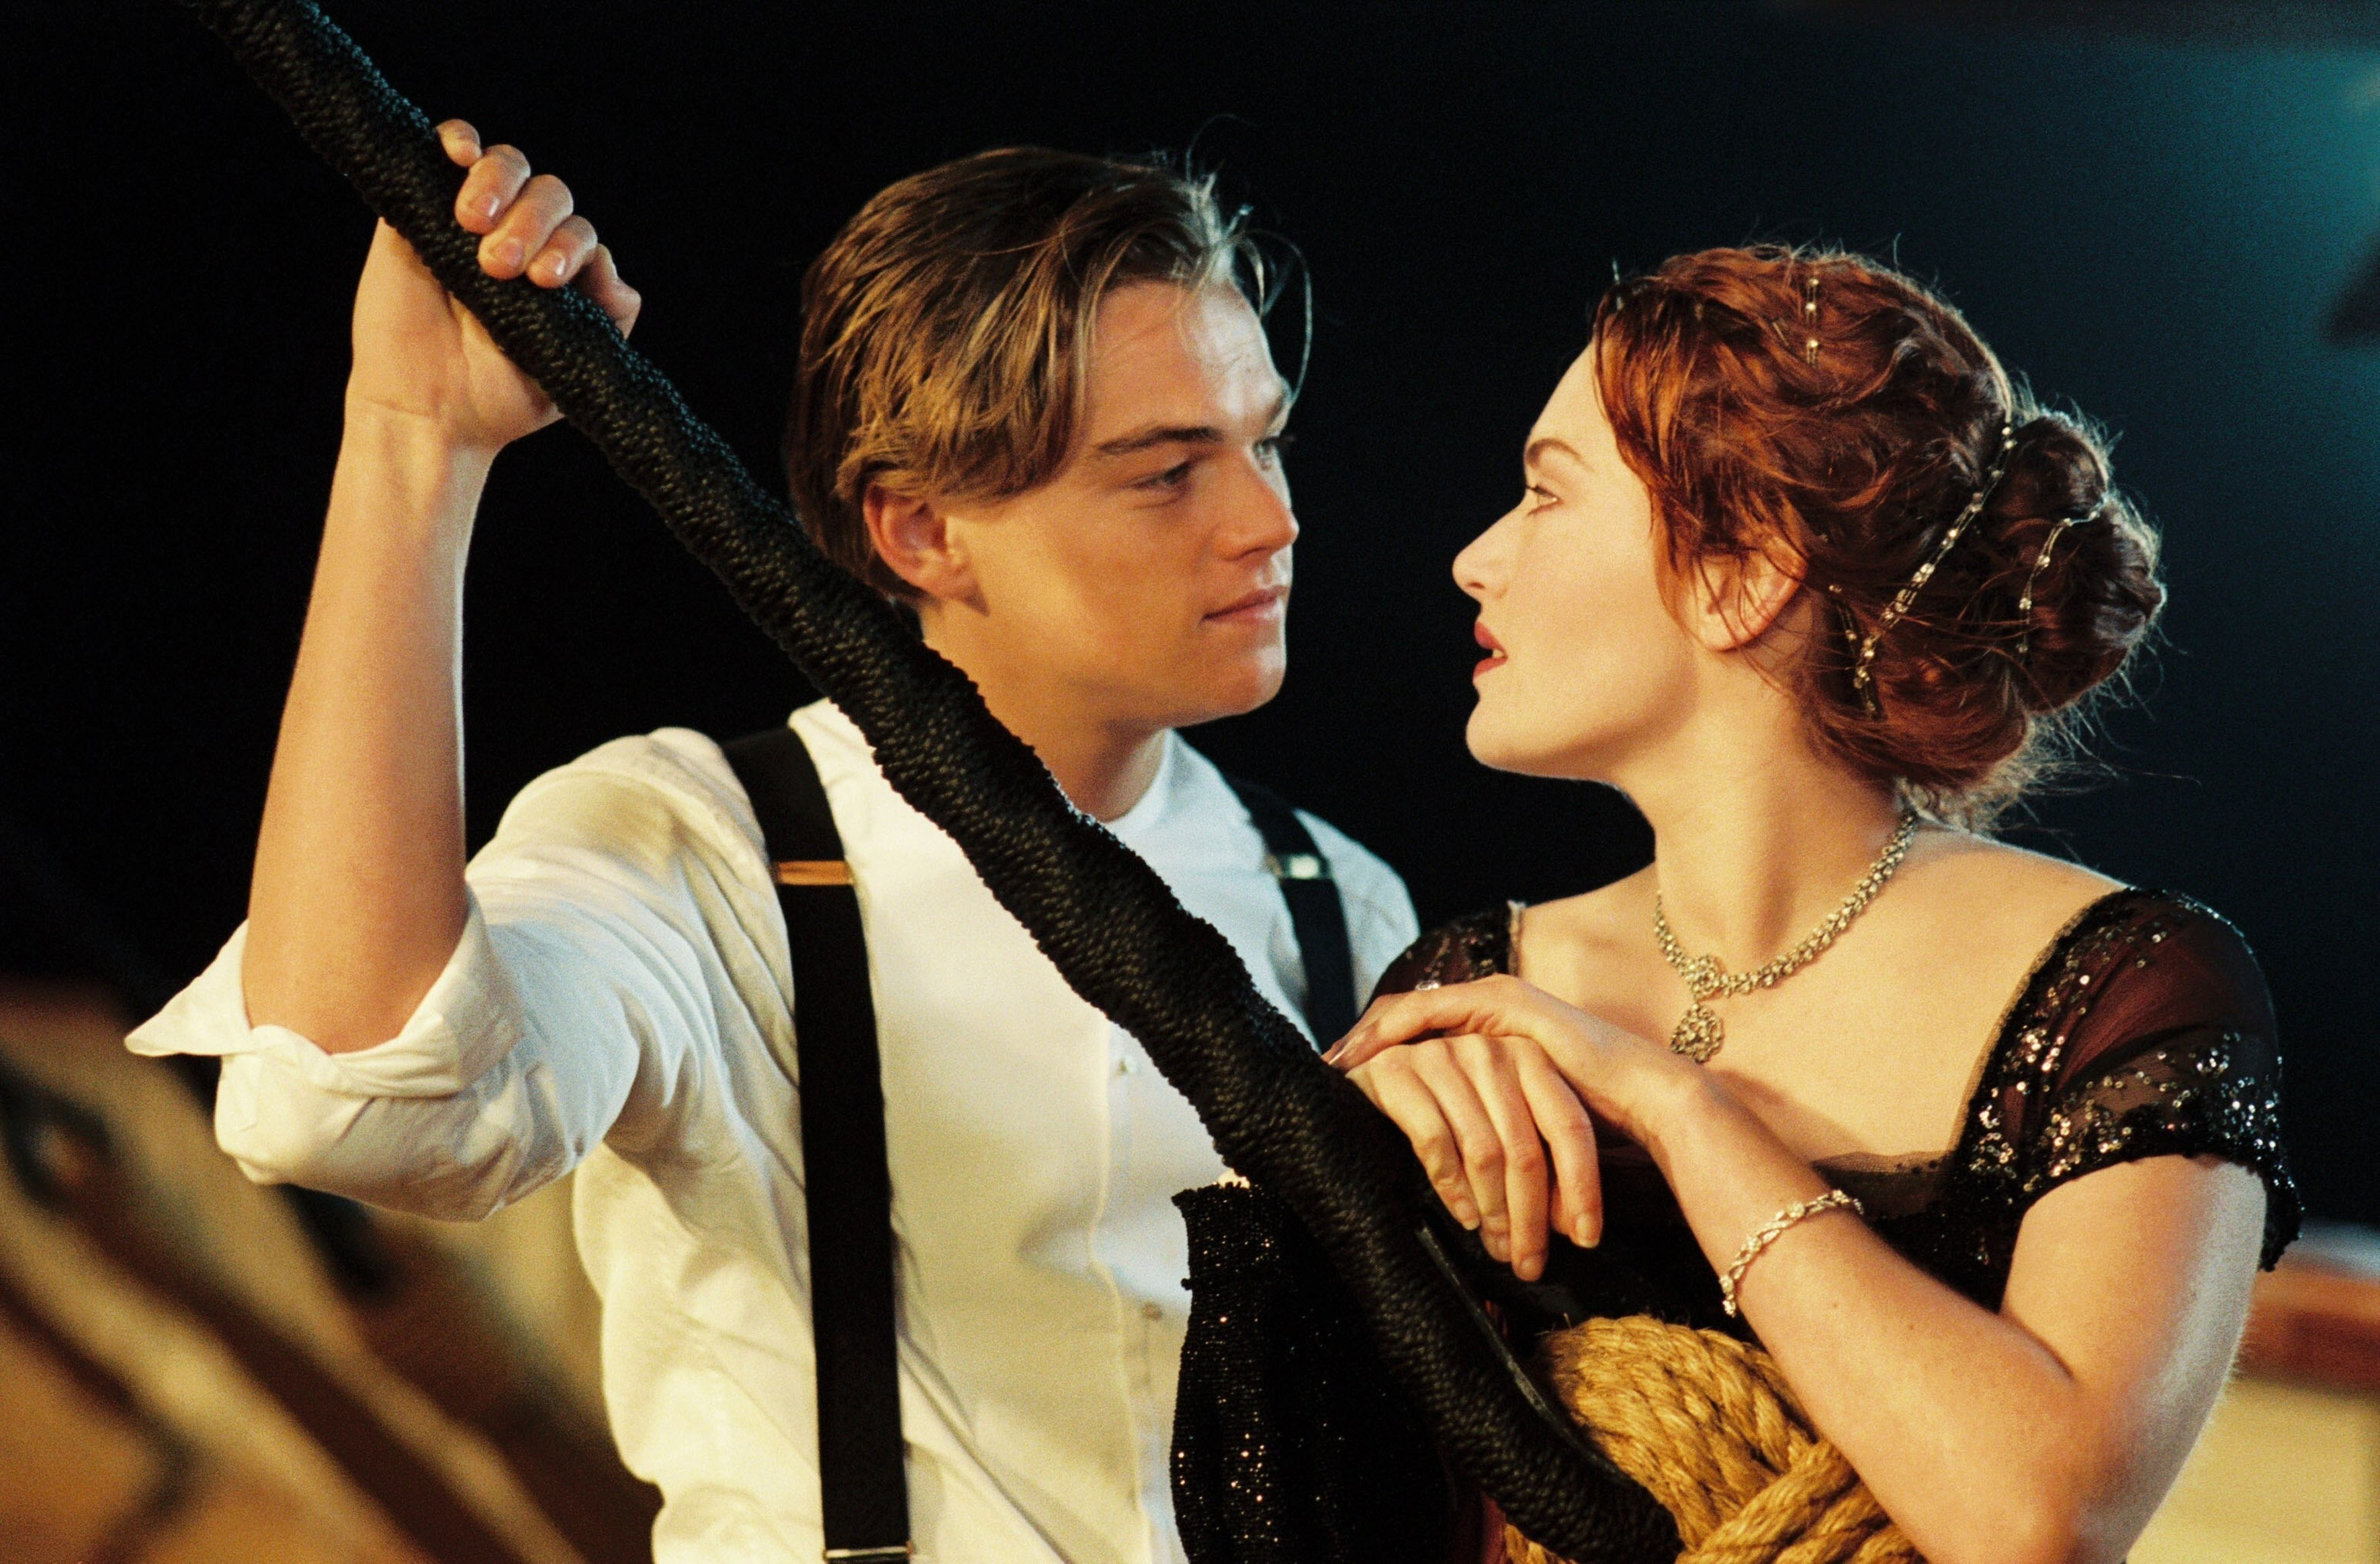 titanic movie beautiful hd wallpapers (high quality) - all hd wallpapers